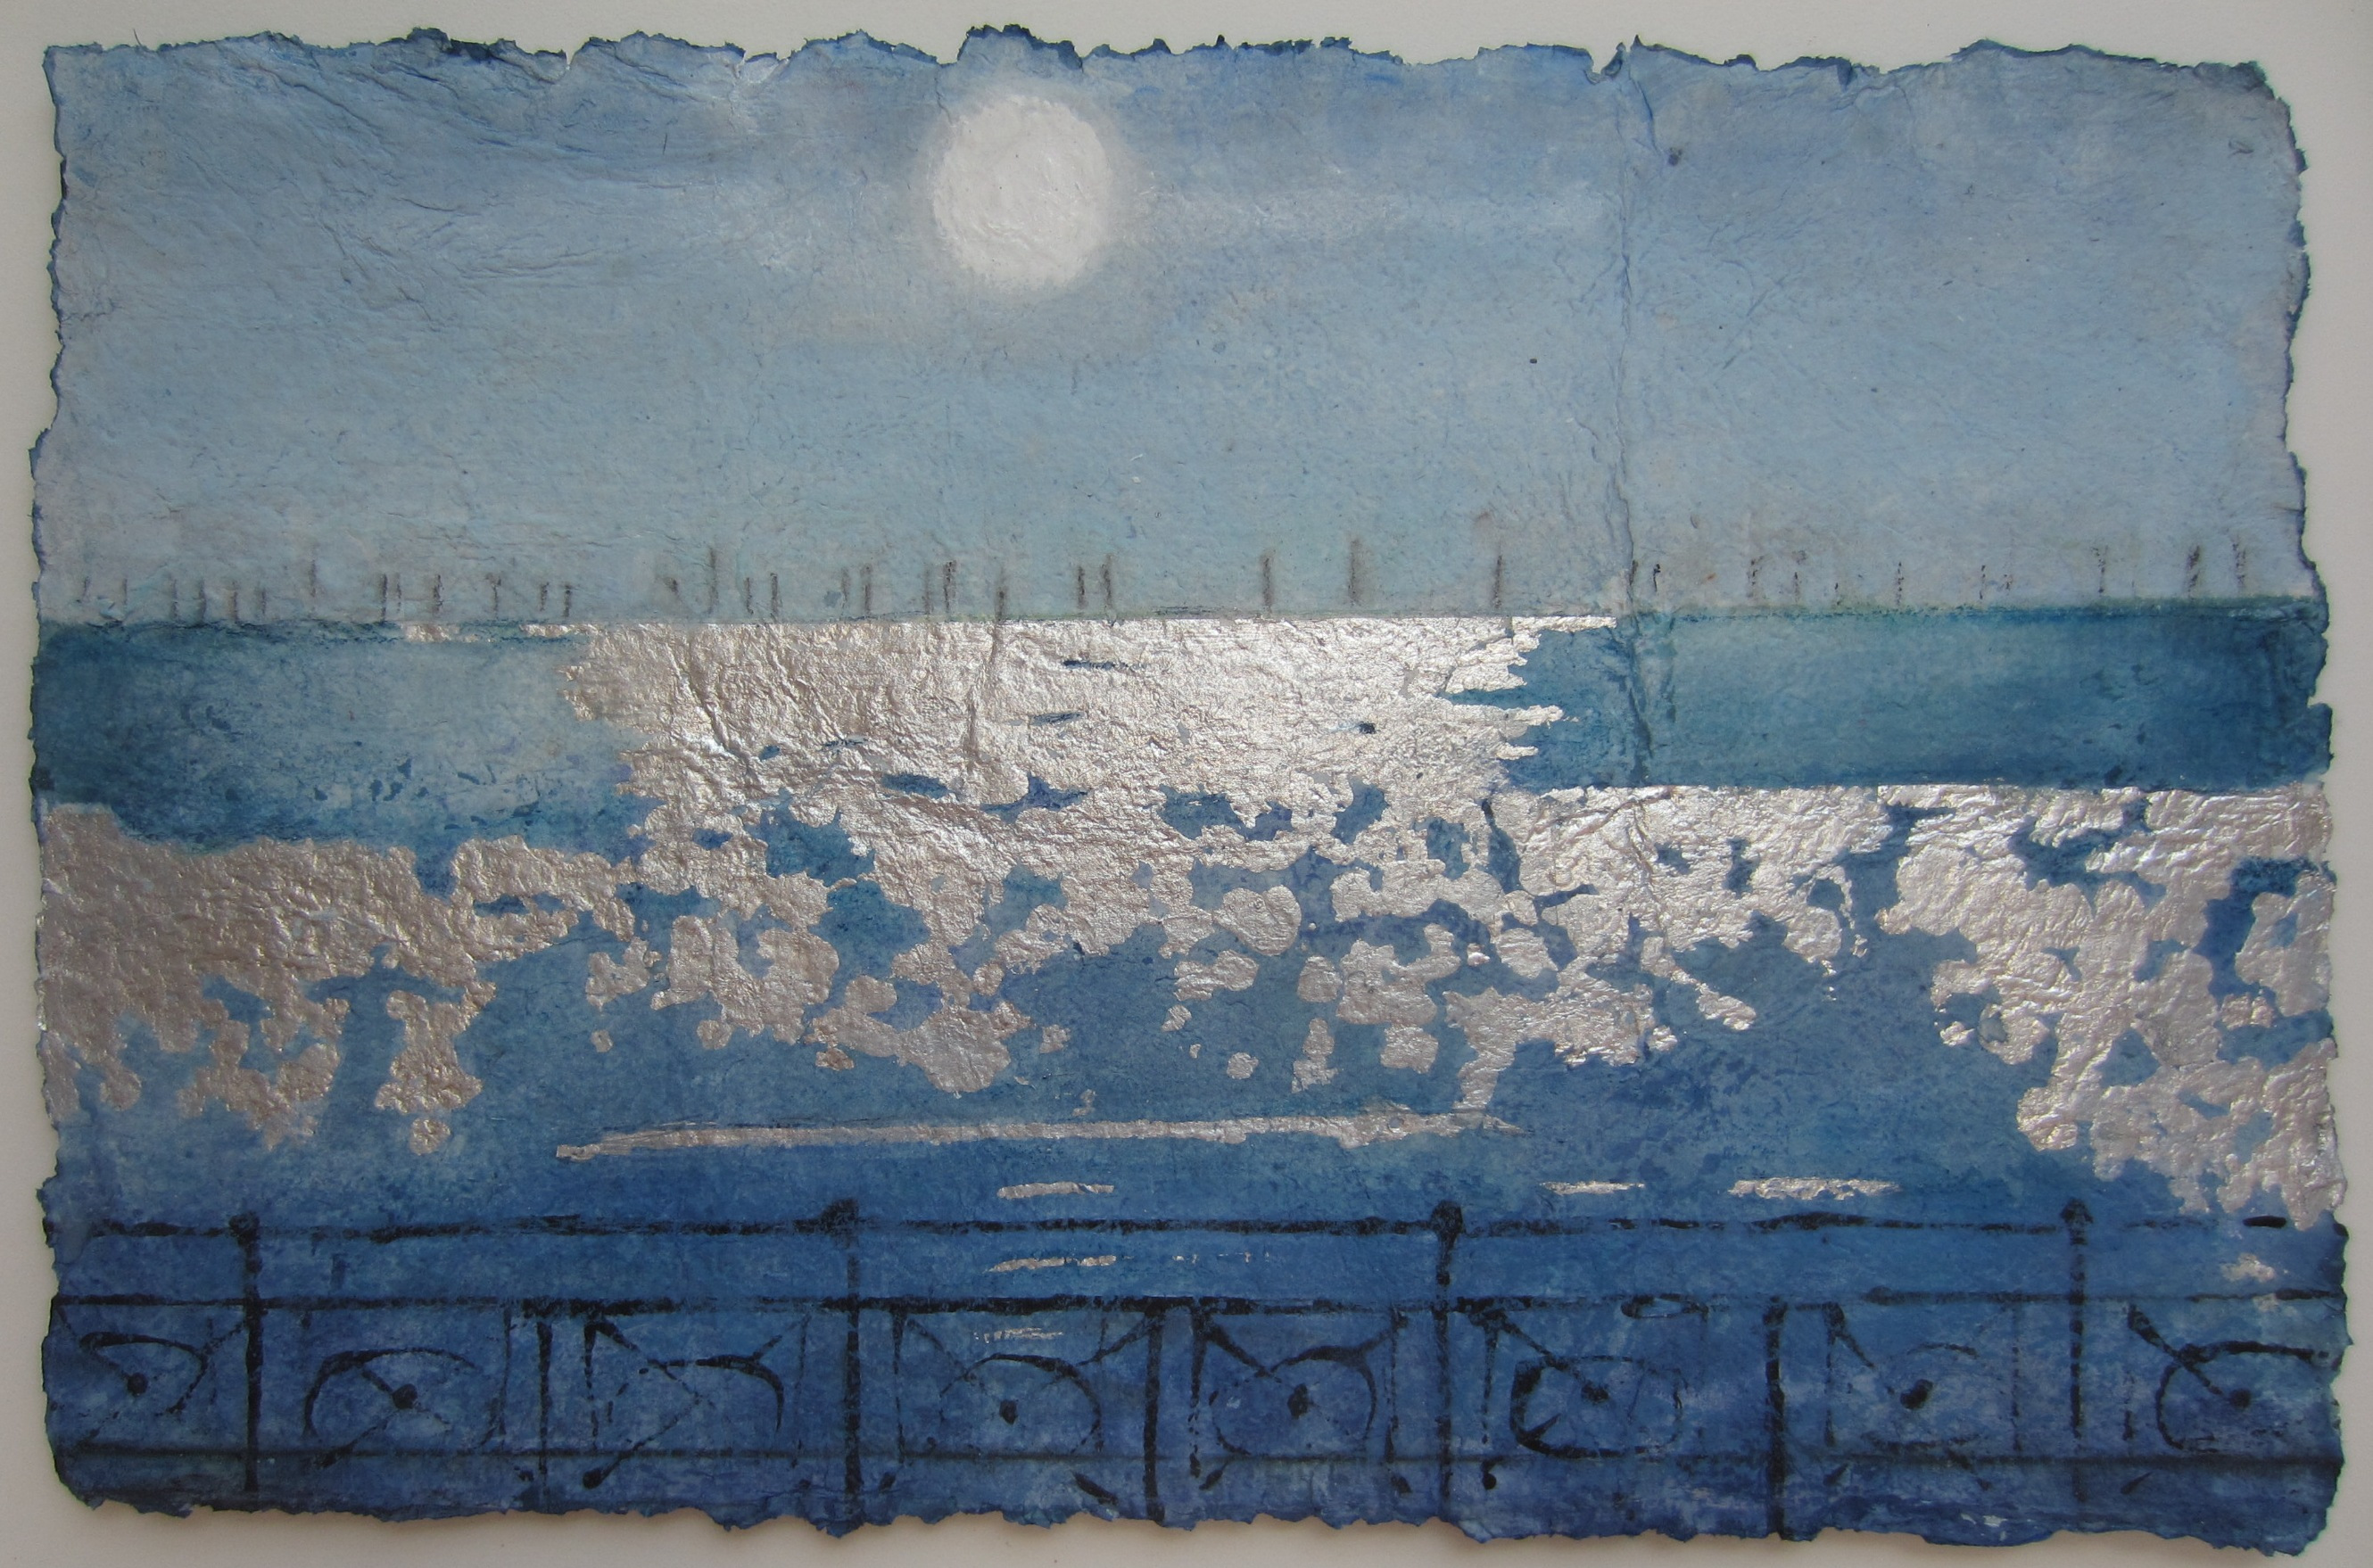 Jill Tattersall Sun Wind Sea, 58x83, paints, inks, pigments, dyes and silver leaf on handmade paper